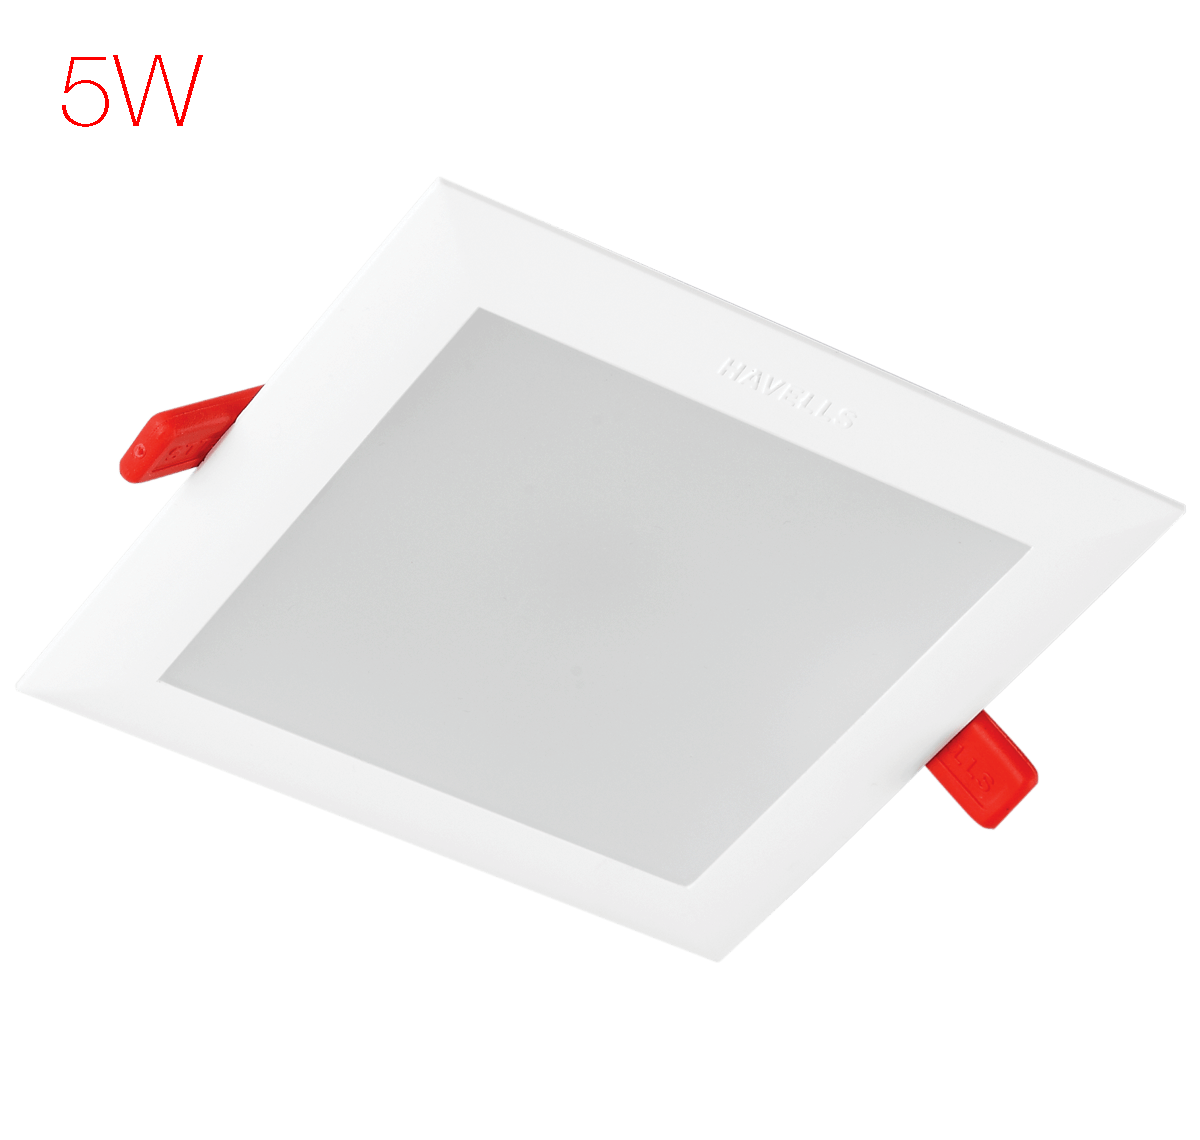 Trim LED Panel Square 5 W